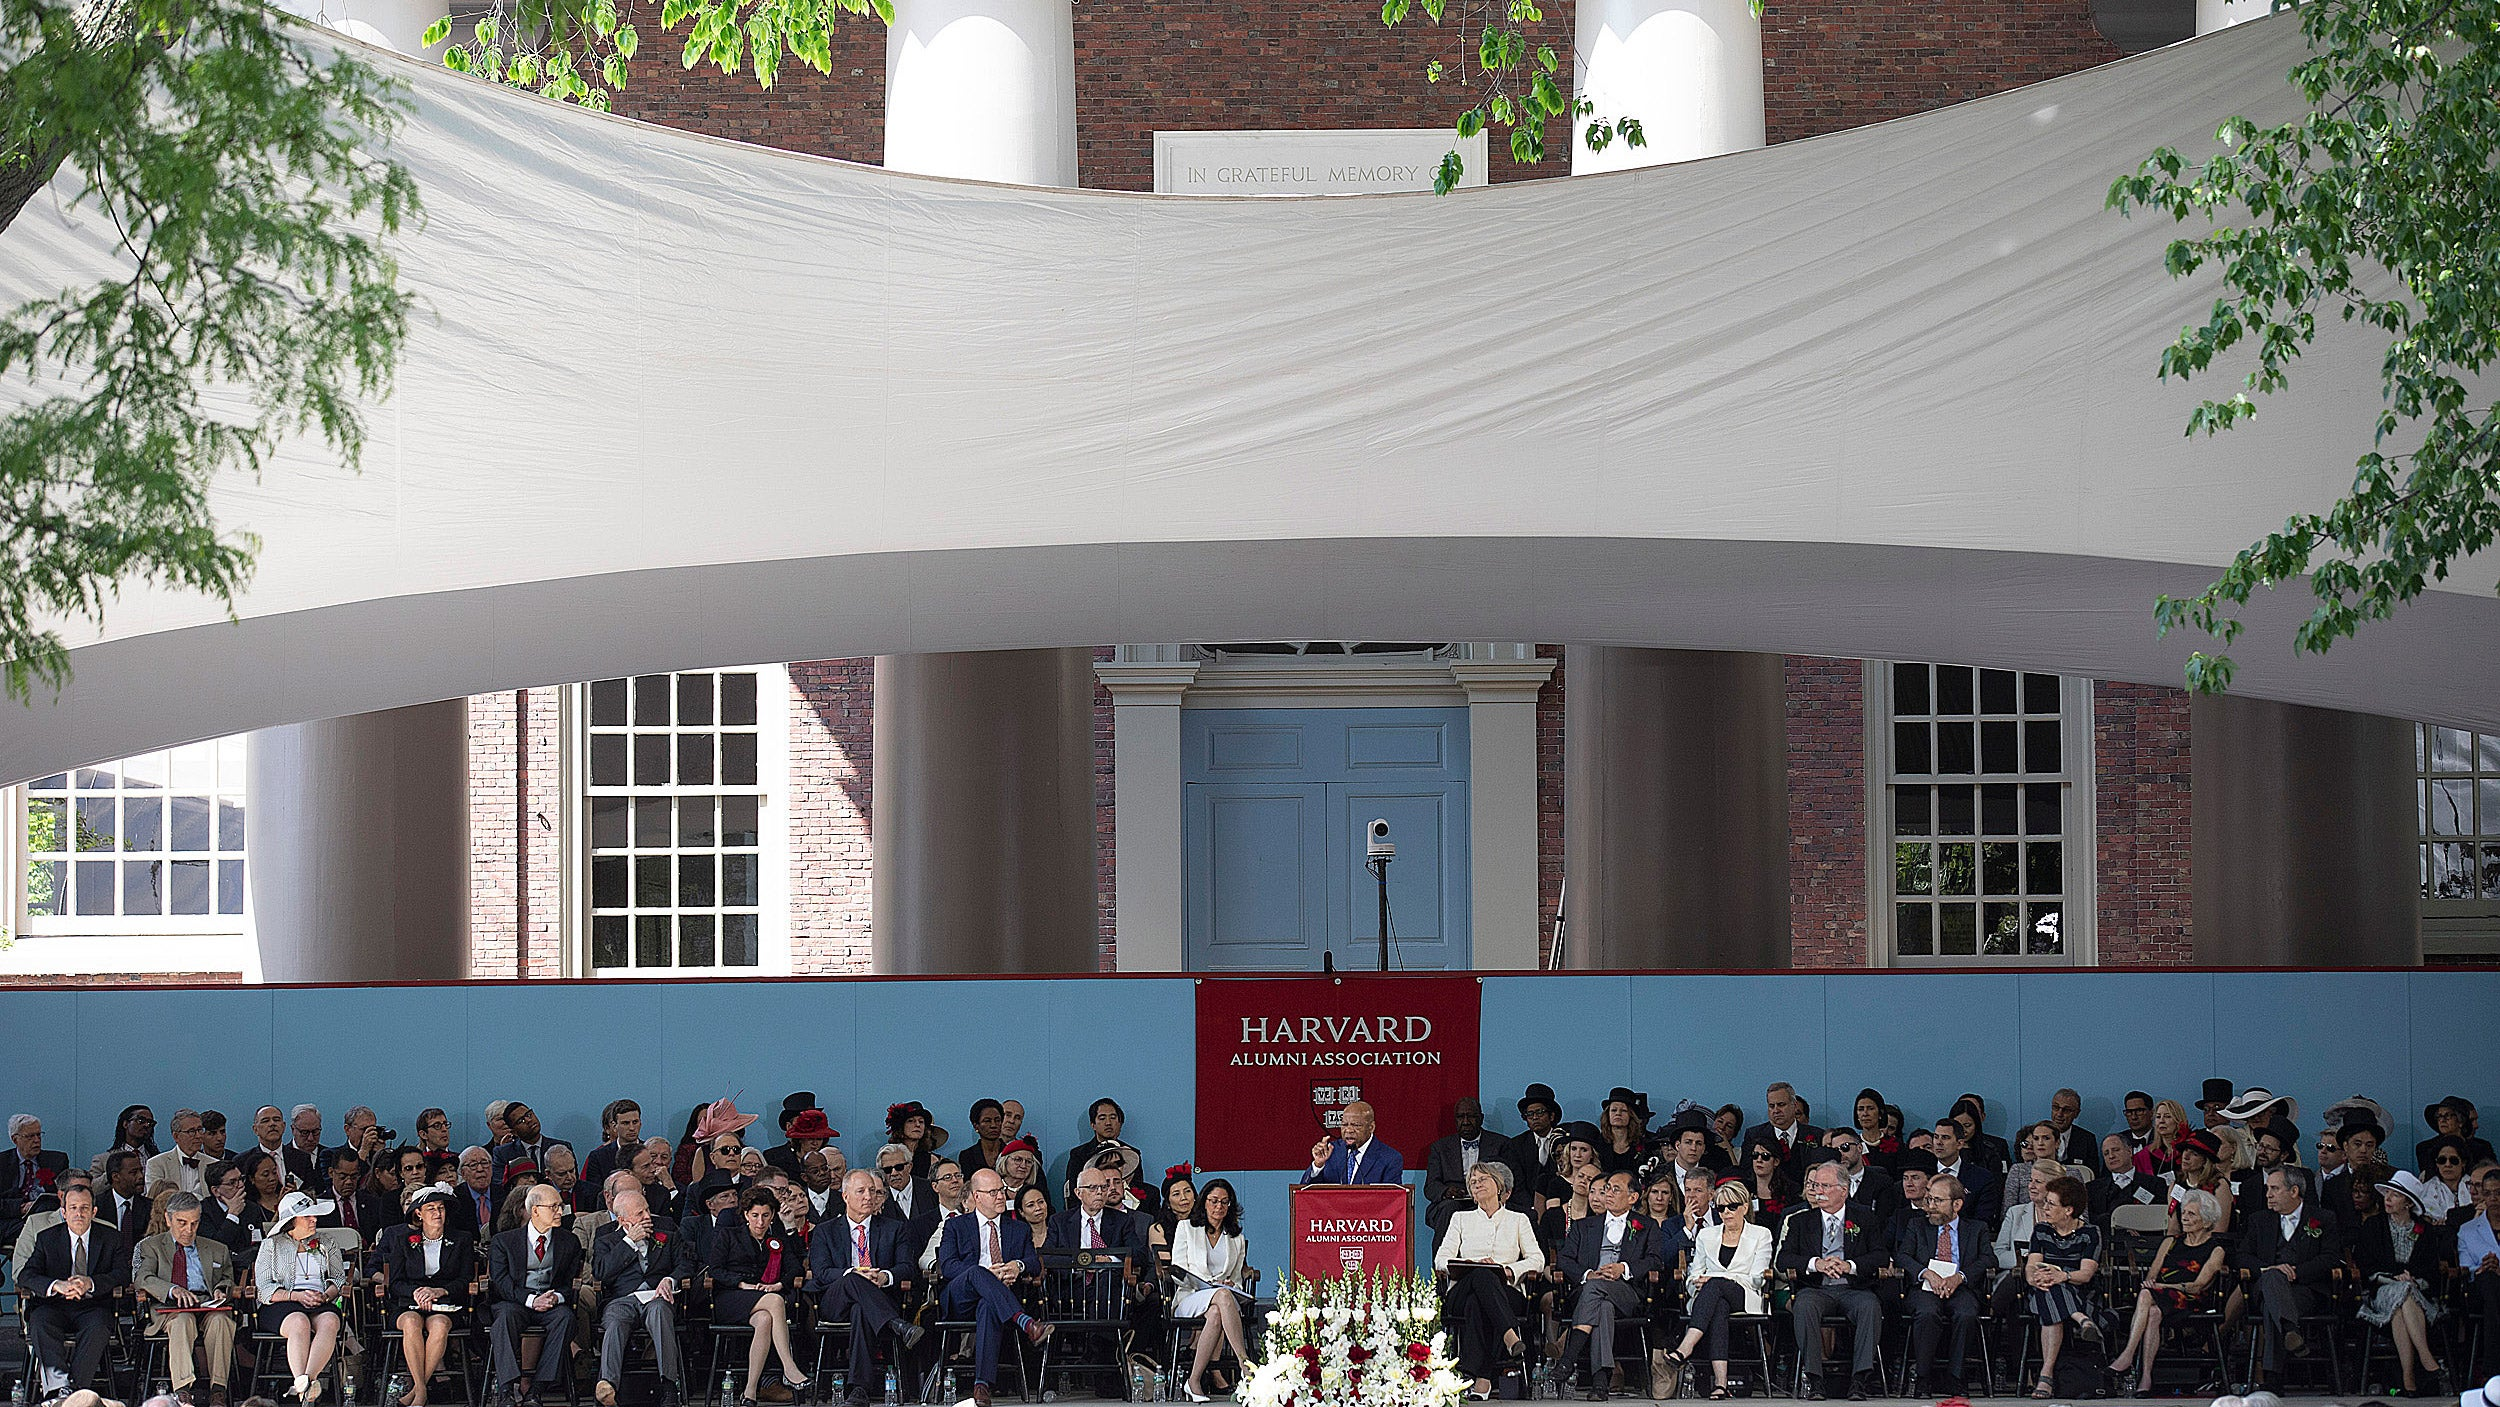 John Lewis speaks to Harvard graduates.